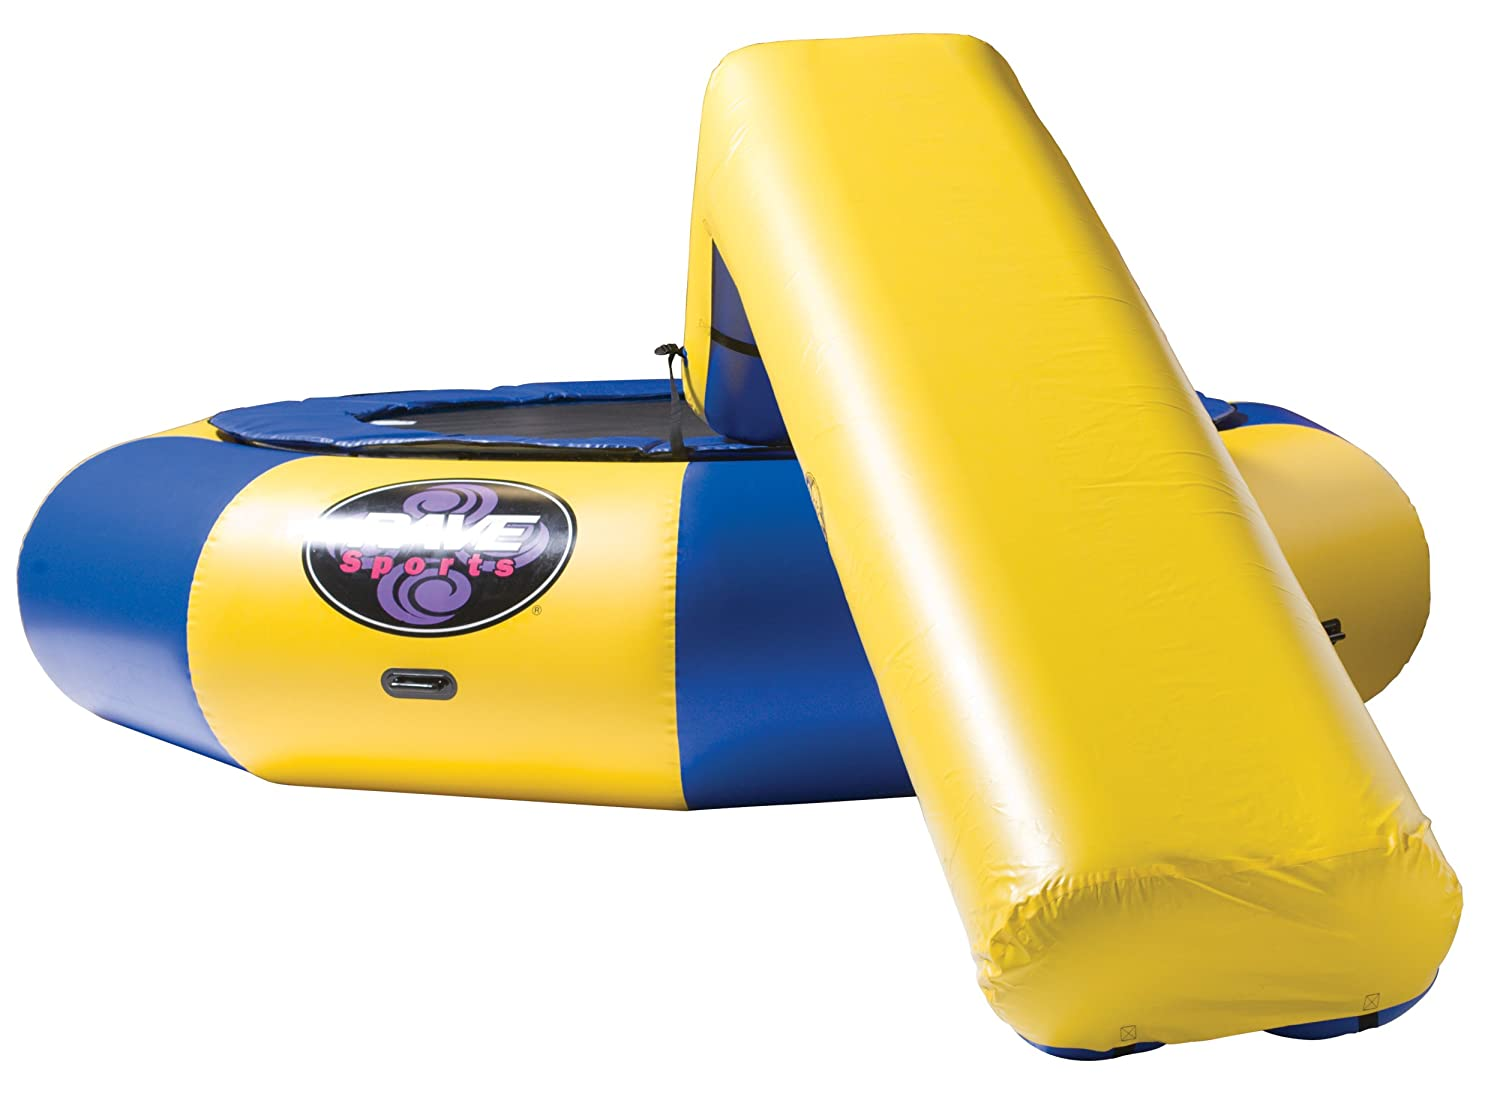 Yellow-Colored Aqua Slide by Rave Sports - best at providing non-stop fun